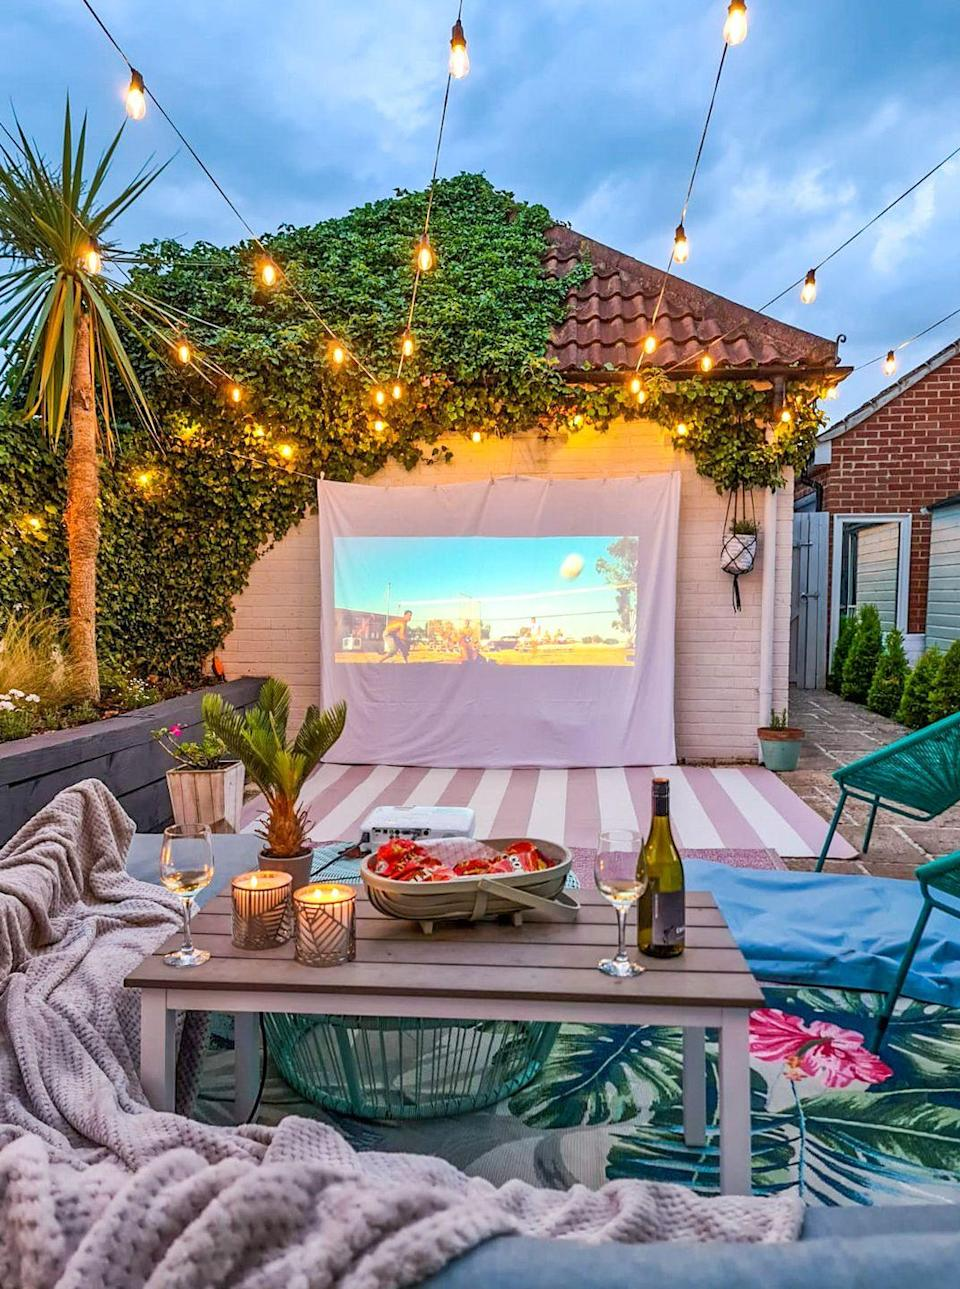 """<p>Create an <a href=""""https://www.housebeautiful.com/uk/garden/a32639929/outdoor-cinema/"""" rel=""""nofollow noopener"""" target=""""_blank"""" data-ylk=""""slk:outdoor cinema"""" class=""""link rapid-noclick-resp"""">outdoor cinema</a> using materials from your home. Transform your space in an instant for movie night using a white sheet, pegs and some string. Then all you need to do is buy a projector (<a href=""""https://www.amazon.co.uk/outdoor-projector/s?k=outdoor+projector&tag=hearstuk-yahoo-21&ascsubtag=%5Bartid%7C2060.g.28%5Bsrc%7Cyahoo-uk"""" rel=""""nofollow noopener"""" target=""""_blank"""" data-ylk=""""slk:shop a range at Amazon to suit all price budgets"""" class=""""link rapid-noclick-resp"""">shop a range at Amazon to suit all price budgets</a>).</p><p>Interior stylist <a href=""""https://www.ohsokel.com/"""" rel=""""nofollow noopener"""" target=""""_blank"""" data-ylk=""""slk:Kel Harmer"""" class=""""link rapid-noclick-resp"""">Kel Harmer</a> created this fabulous outdoor cinema in her garden. 'To create the DIY Movie Night we used string, pegs and a kingsize white sheet to create the screen and a projector which we placed on a garden table and ran the leads underneath the seating to prevent hazards,' she explains.</p><p><strong>READ MORE:</strong> <a href=""""https://www.housebeautiful.com/uk/garden/makeovers/g35695142/before-after-miami-garden-transformation-outdoor-cinema/"""" rel=""""nofollow noopener"""" target=""""_blank"""" data-ylk=""""slk:Kel Harmer's garden makeover"""" class=""""link rapid-noclick-resp"""">Kel Harmer's garden makeover</a></p>"""